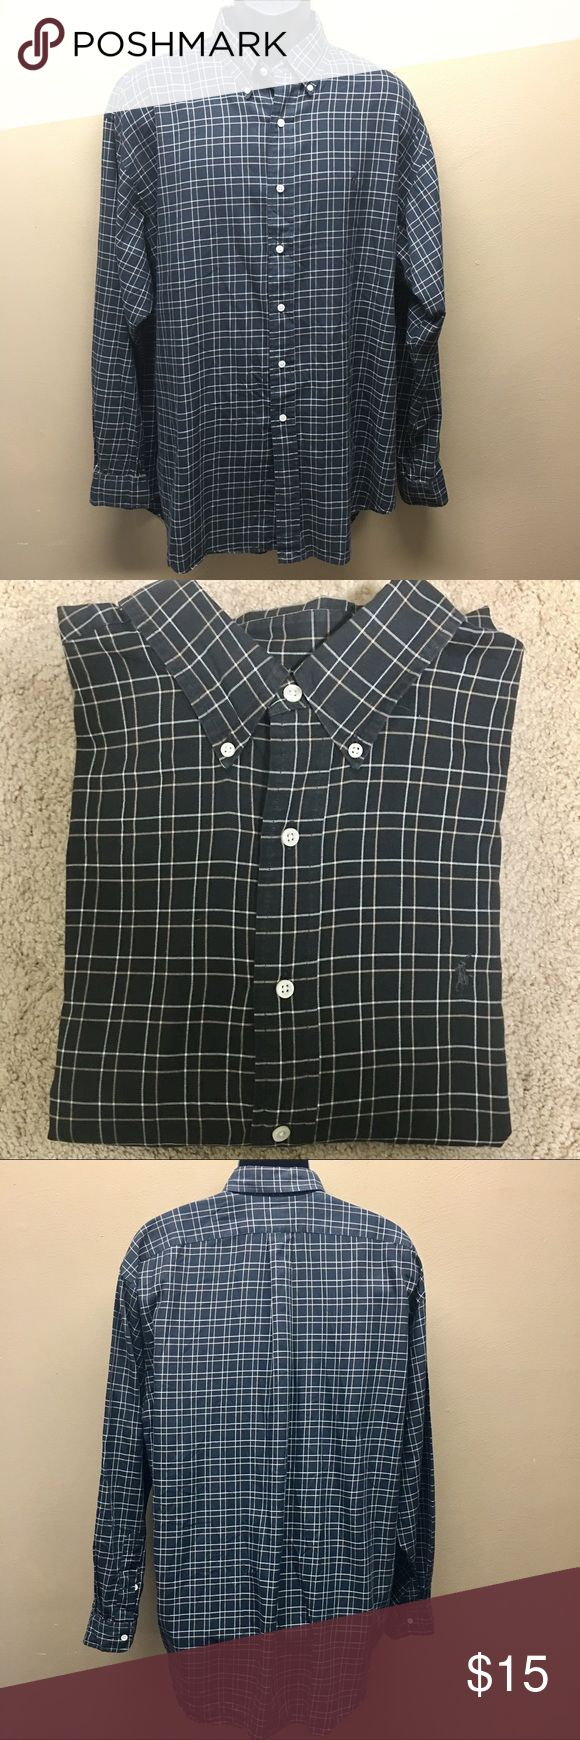 BOGO Sale 🎉Polo by Ralph Lauren Button Down Long sleeve Polo by Ralph Lauren Button Down Shirt. Size XL. Dark navy with stripes. Nice thin 100% cotton material. Very small imperfection by lower Button. Shown in last pic. $10 items 2 for $15 or 3 for $20!! Polo by Ralph Lauren Shirts Casual Button Down Shirts